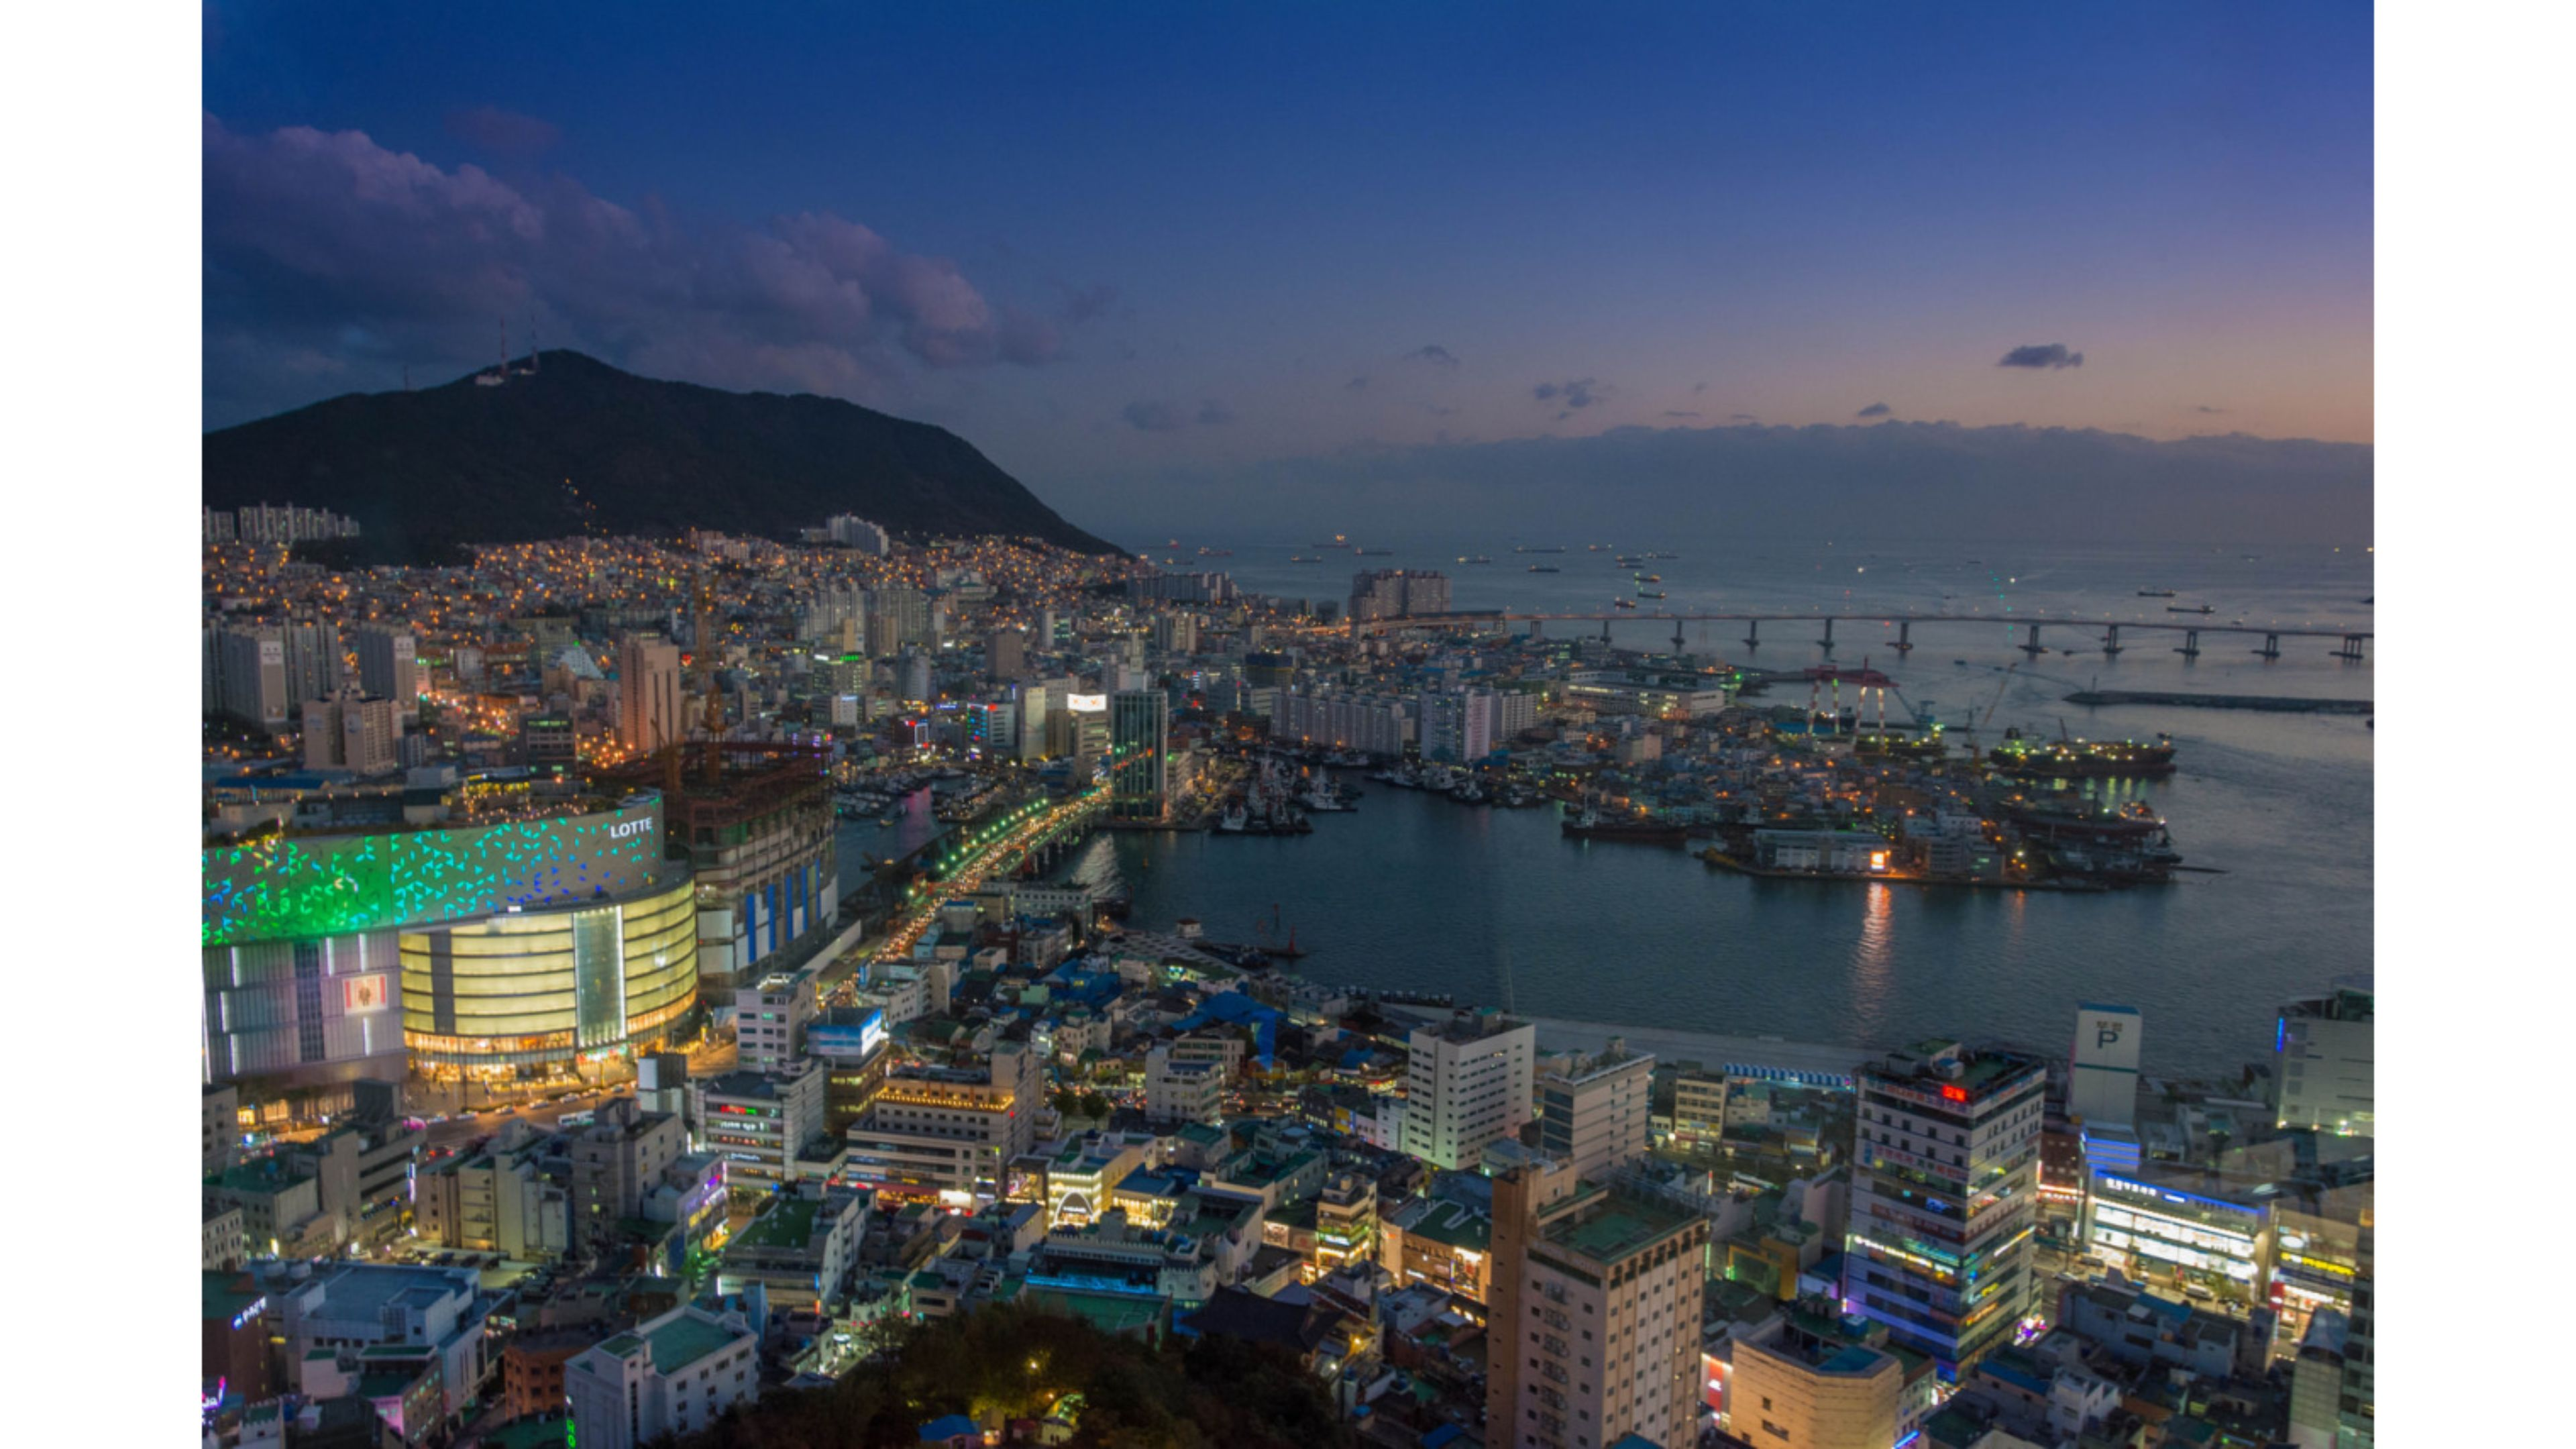 Busan Wallpapers and Background Images   stmednet 3840x2160